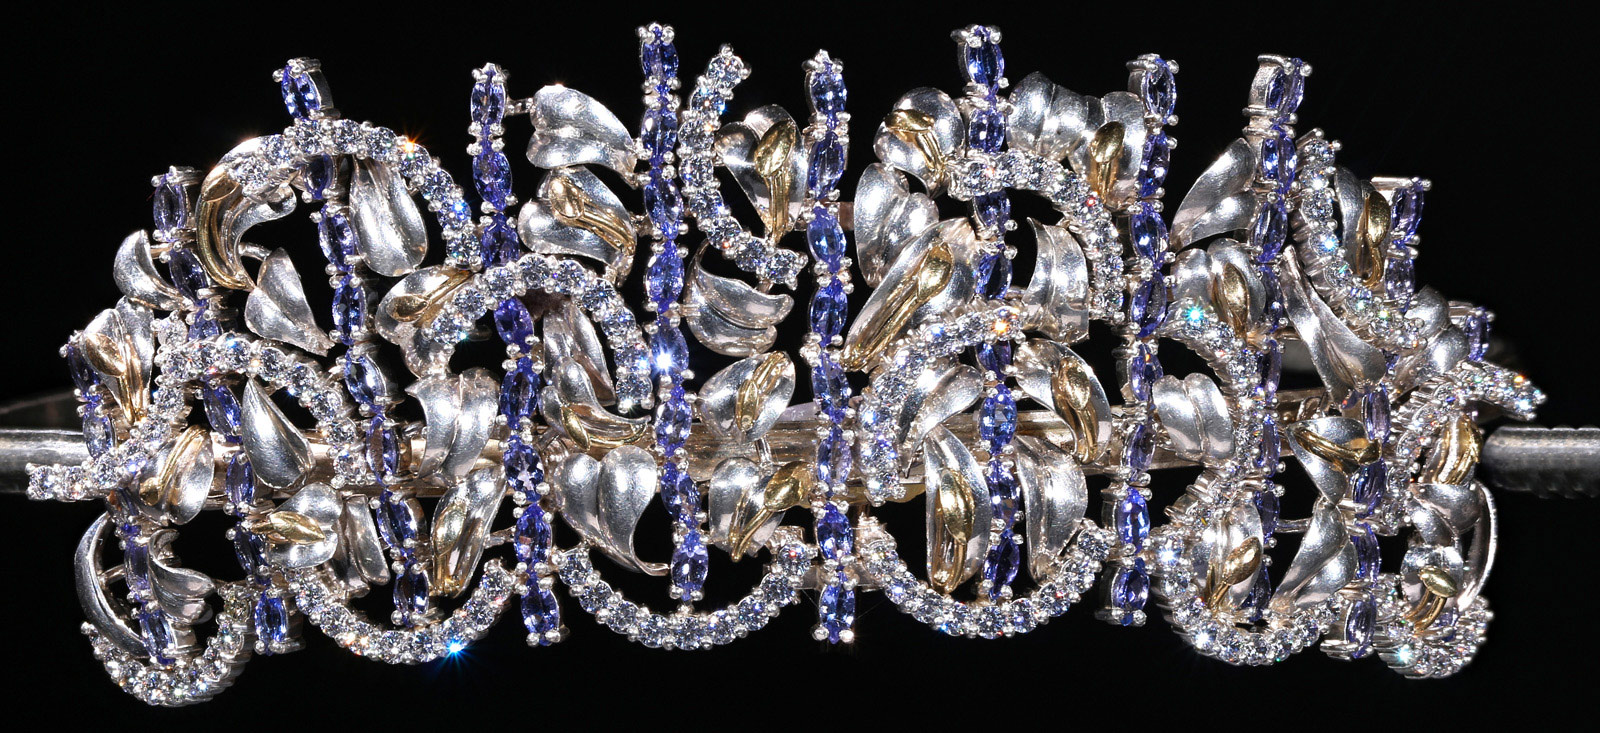 Princess Consuela Tanzanite with Diamond Tiara in hallmarked 18ct Gold and Silver